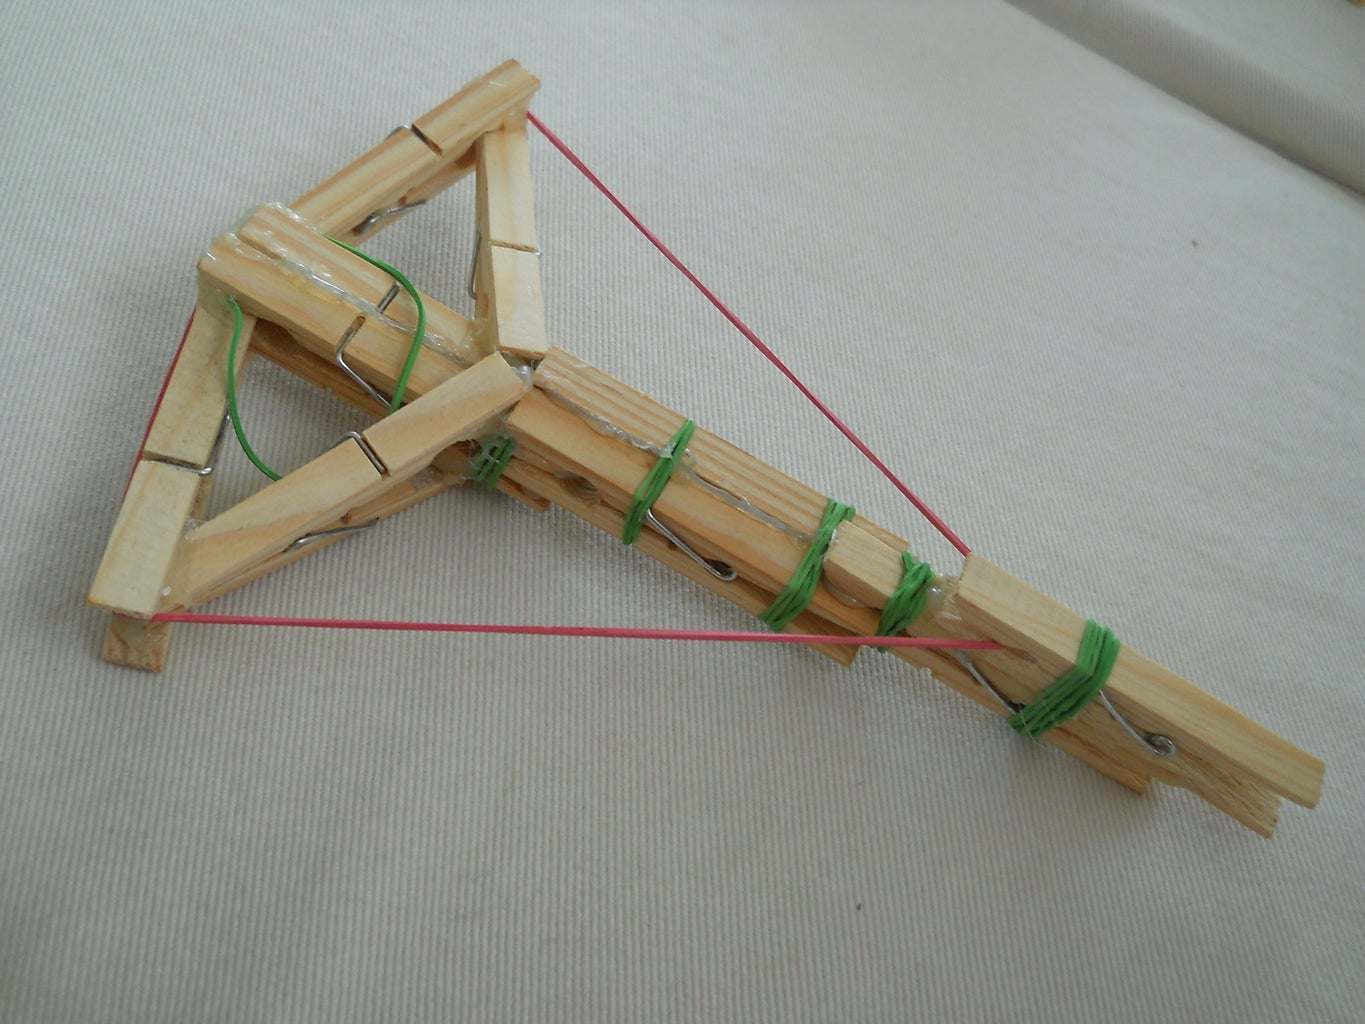 Making the Crossbow